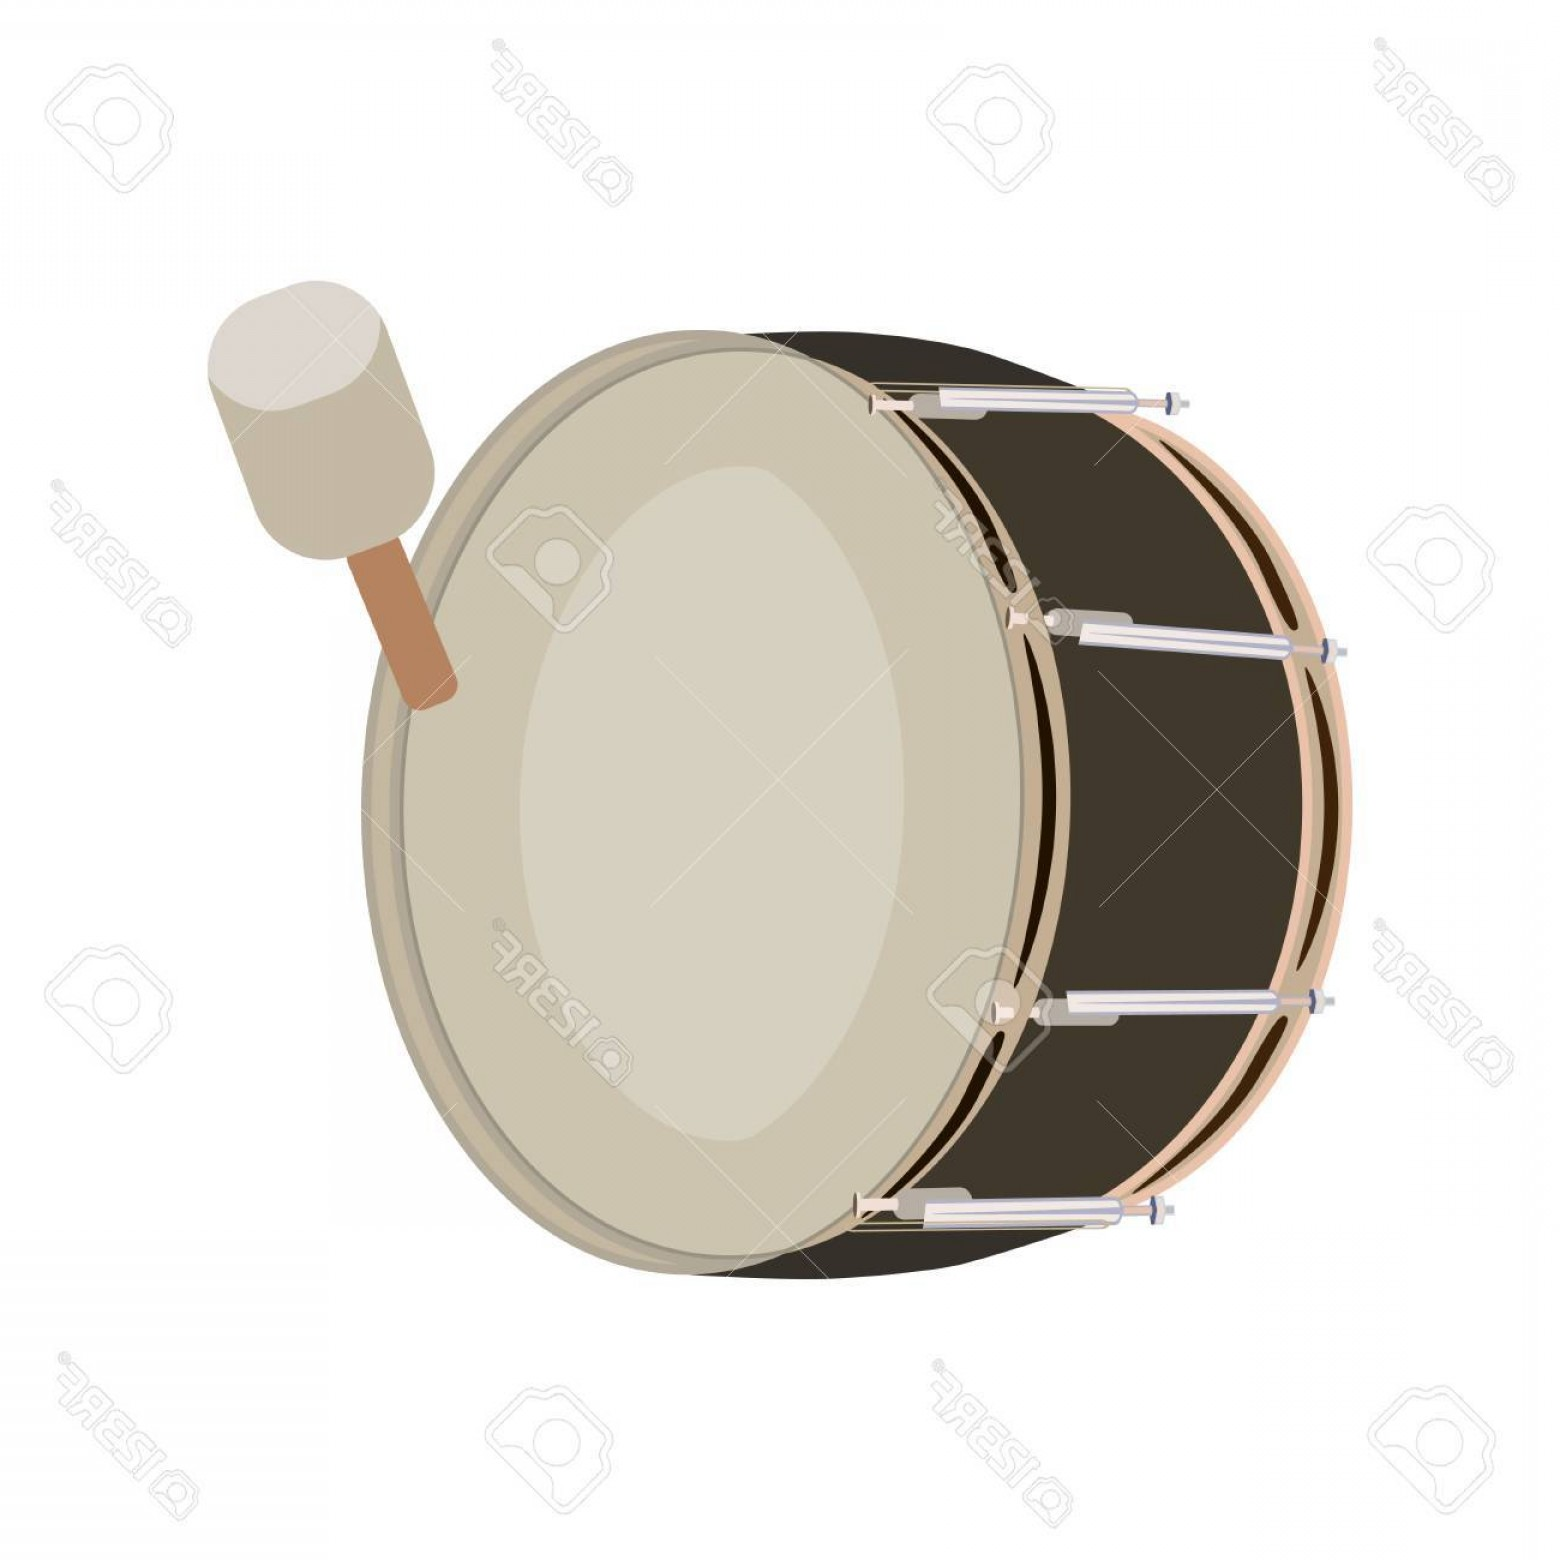 Kick Drum Vector: Photostock Vector Vector Illustration Of Pipe Band Bass Drum Musical Instrument Isolated On White Background